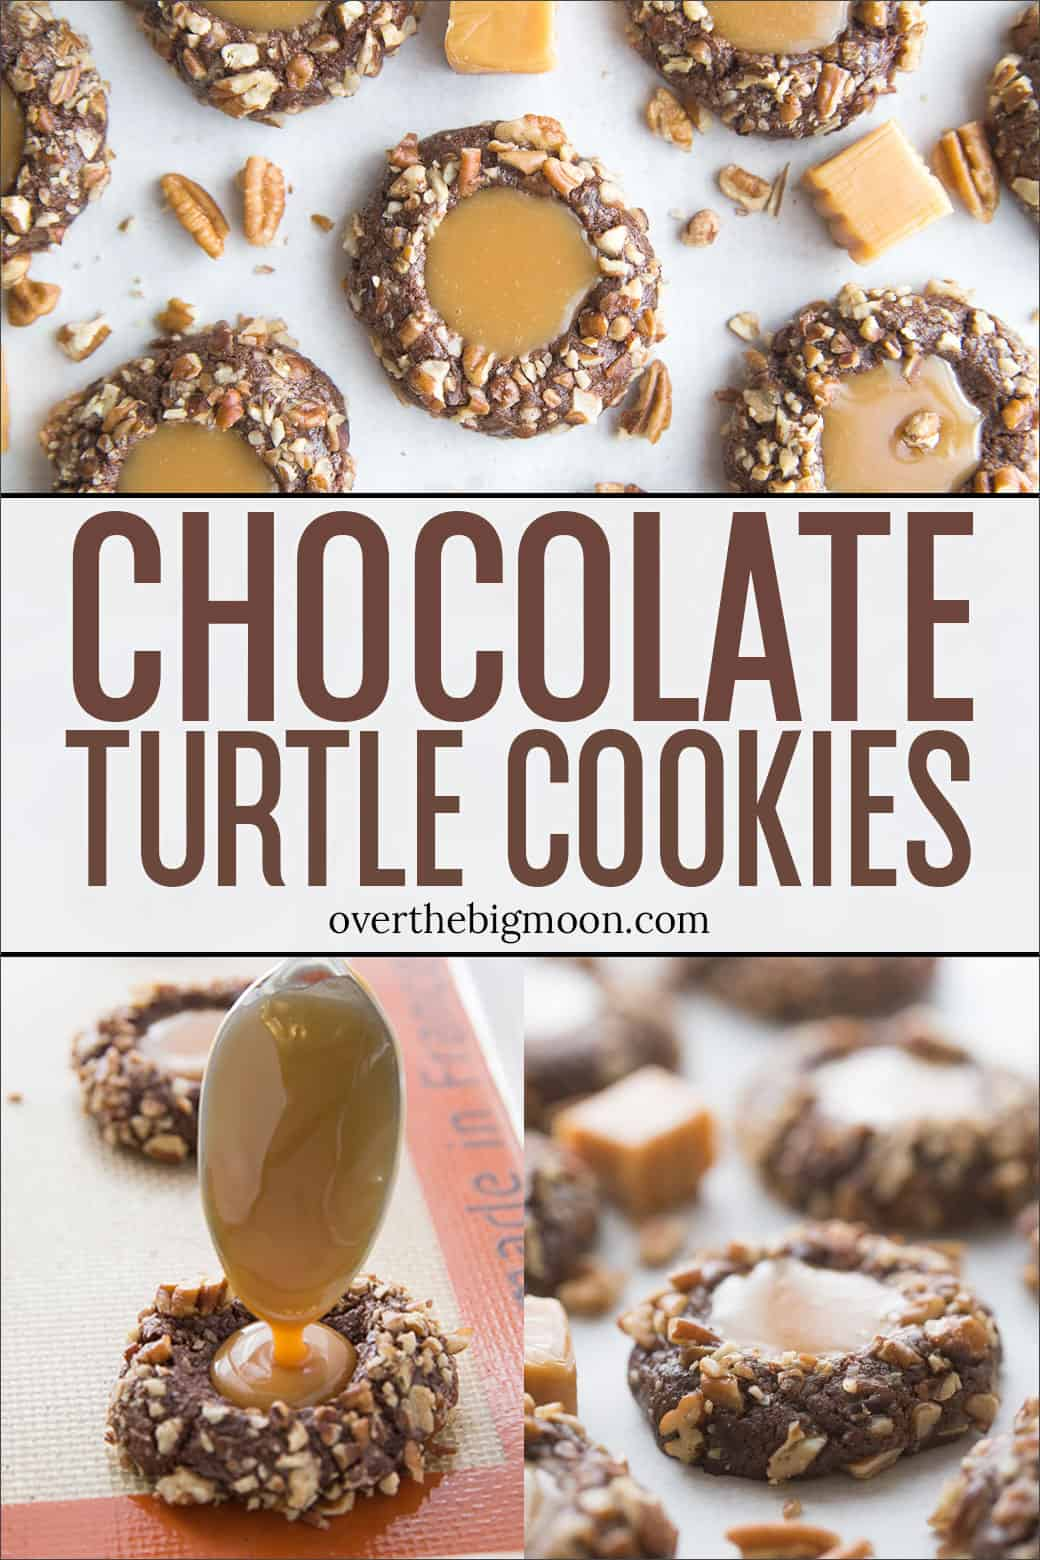 The BEST Chocolate Turtle Cookies - this chocolate pecan cookie with caramel topping is sure to put you in a good mood! From overthebigmoon.com!